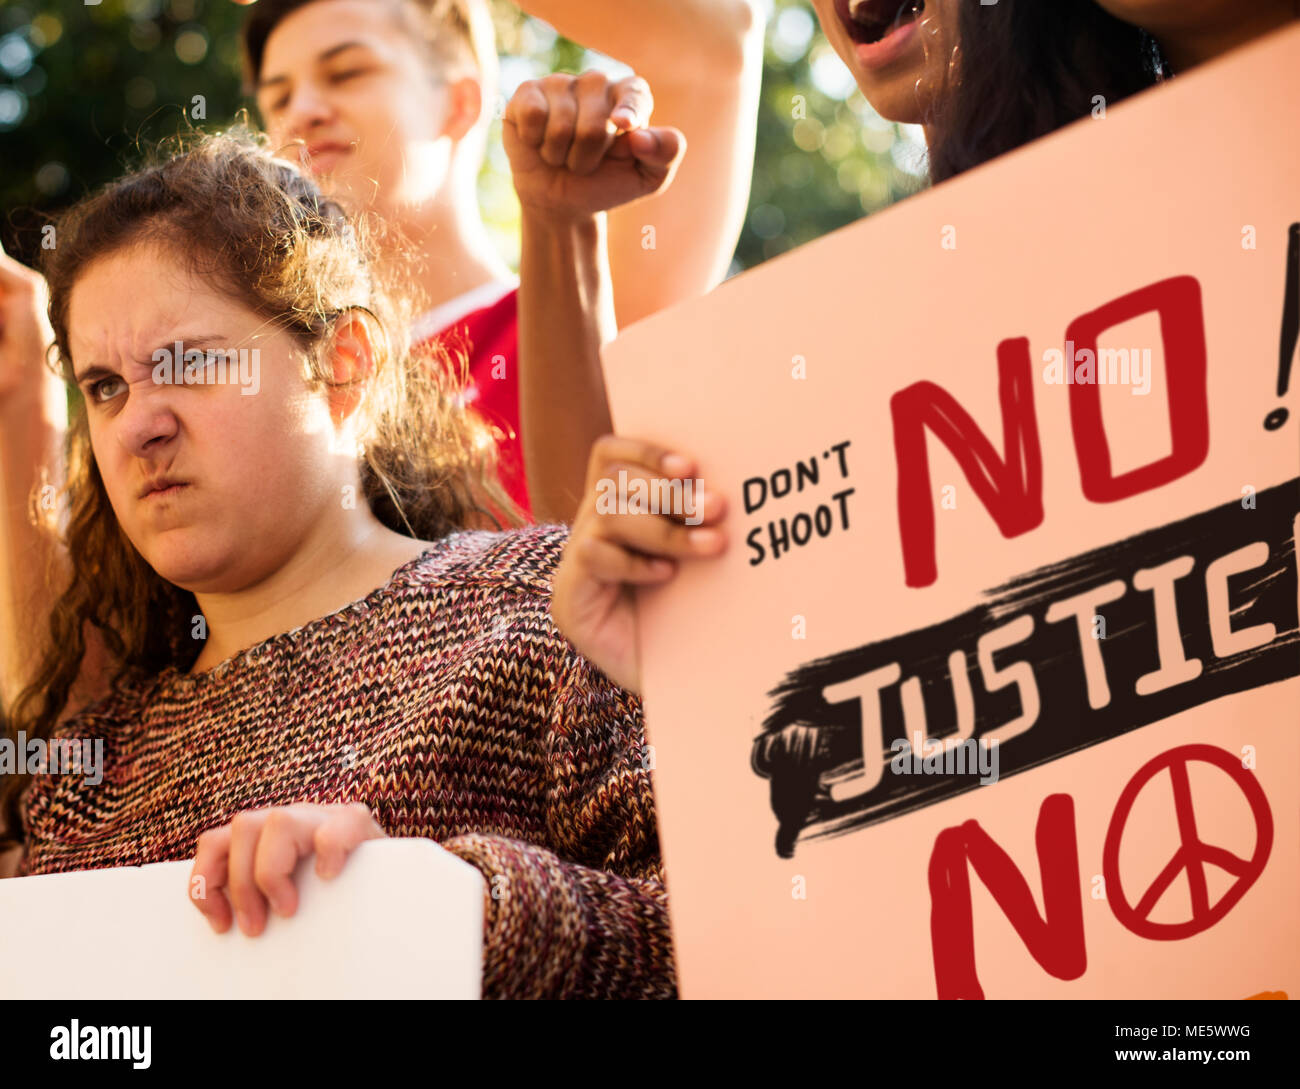 Closeup of angry teen girl protesting demonstration holding posters antiwar justice peace concept - Stock Image